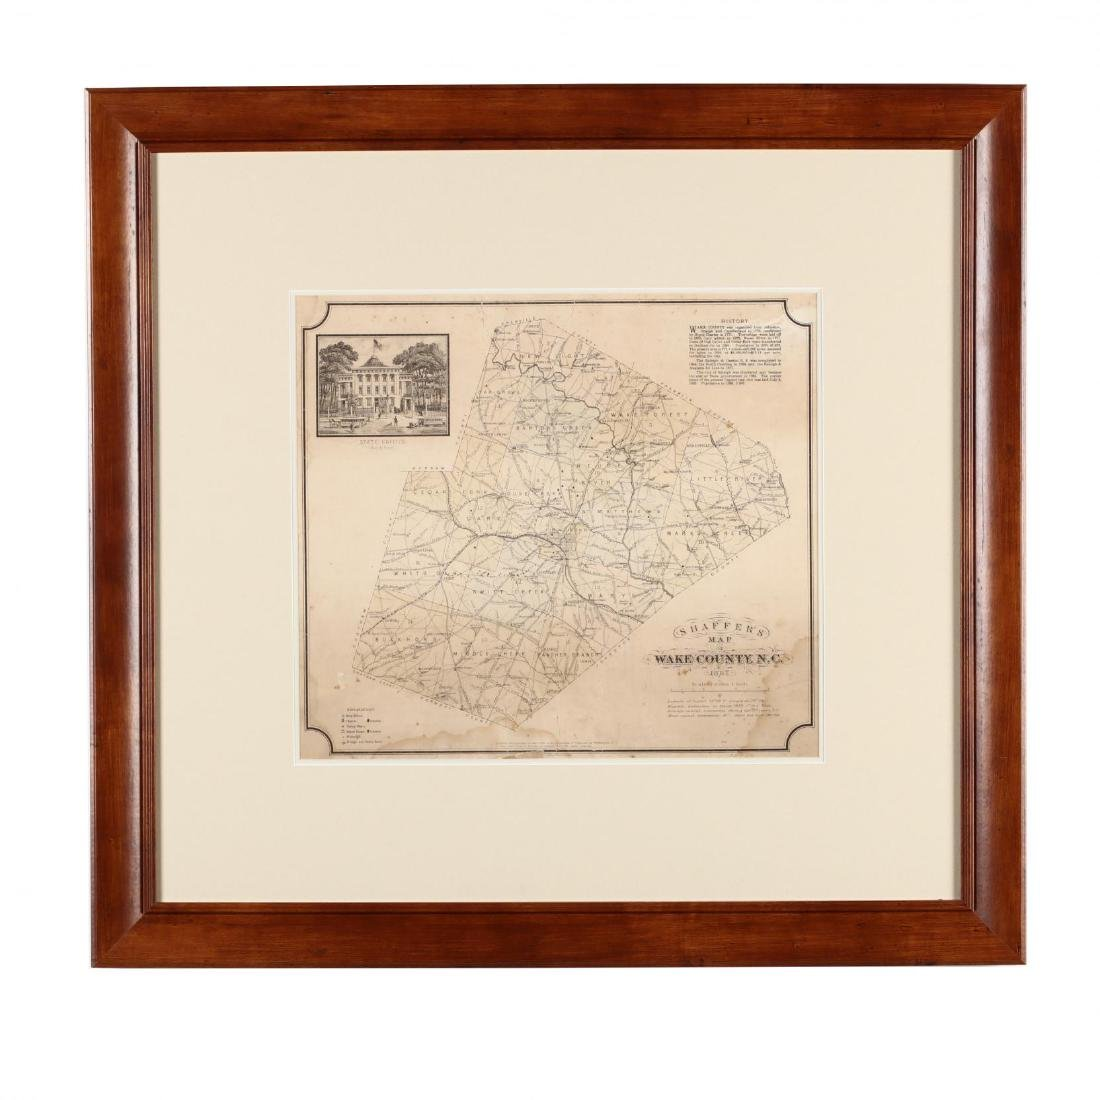 Antique Framed Map of Wake County, NC